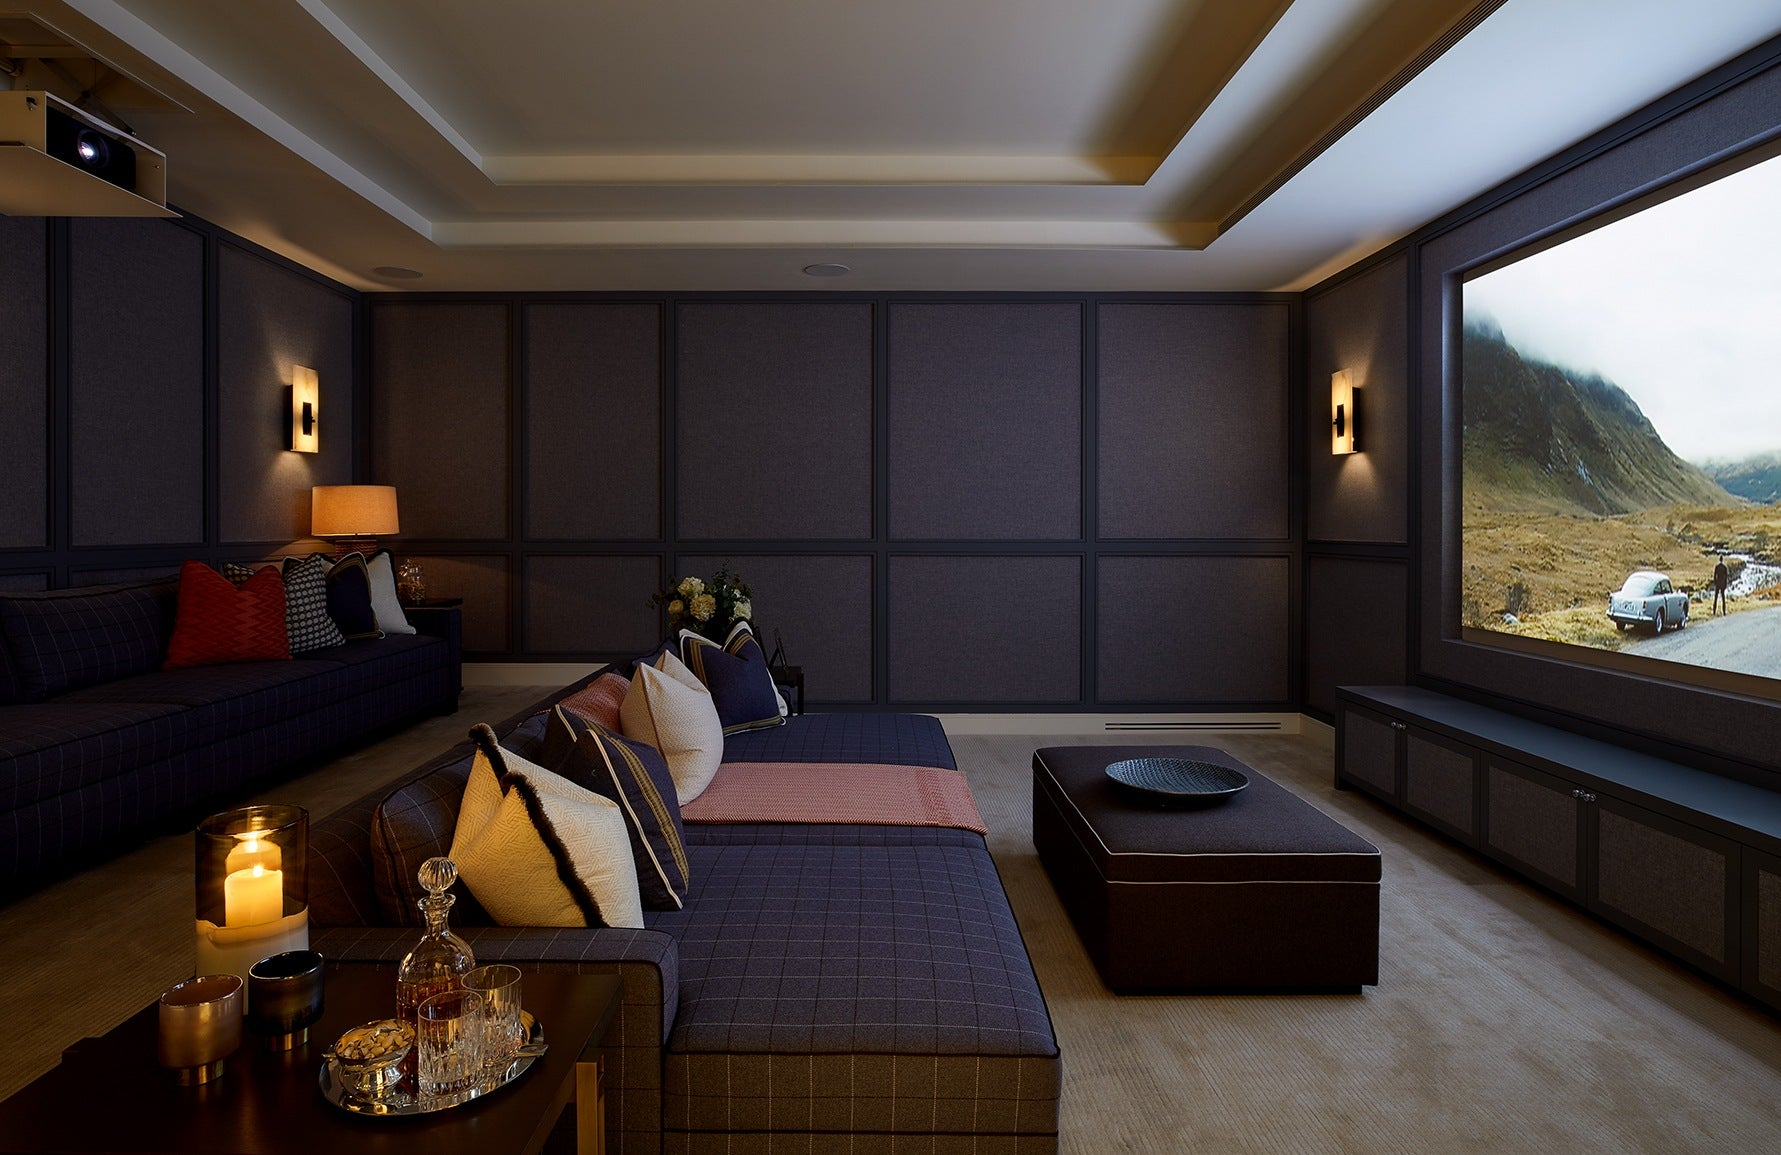 How To Design Your Own Home Cinema Room | Interior by Finchatton | Get the look at LuxDeco.com